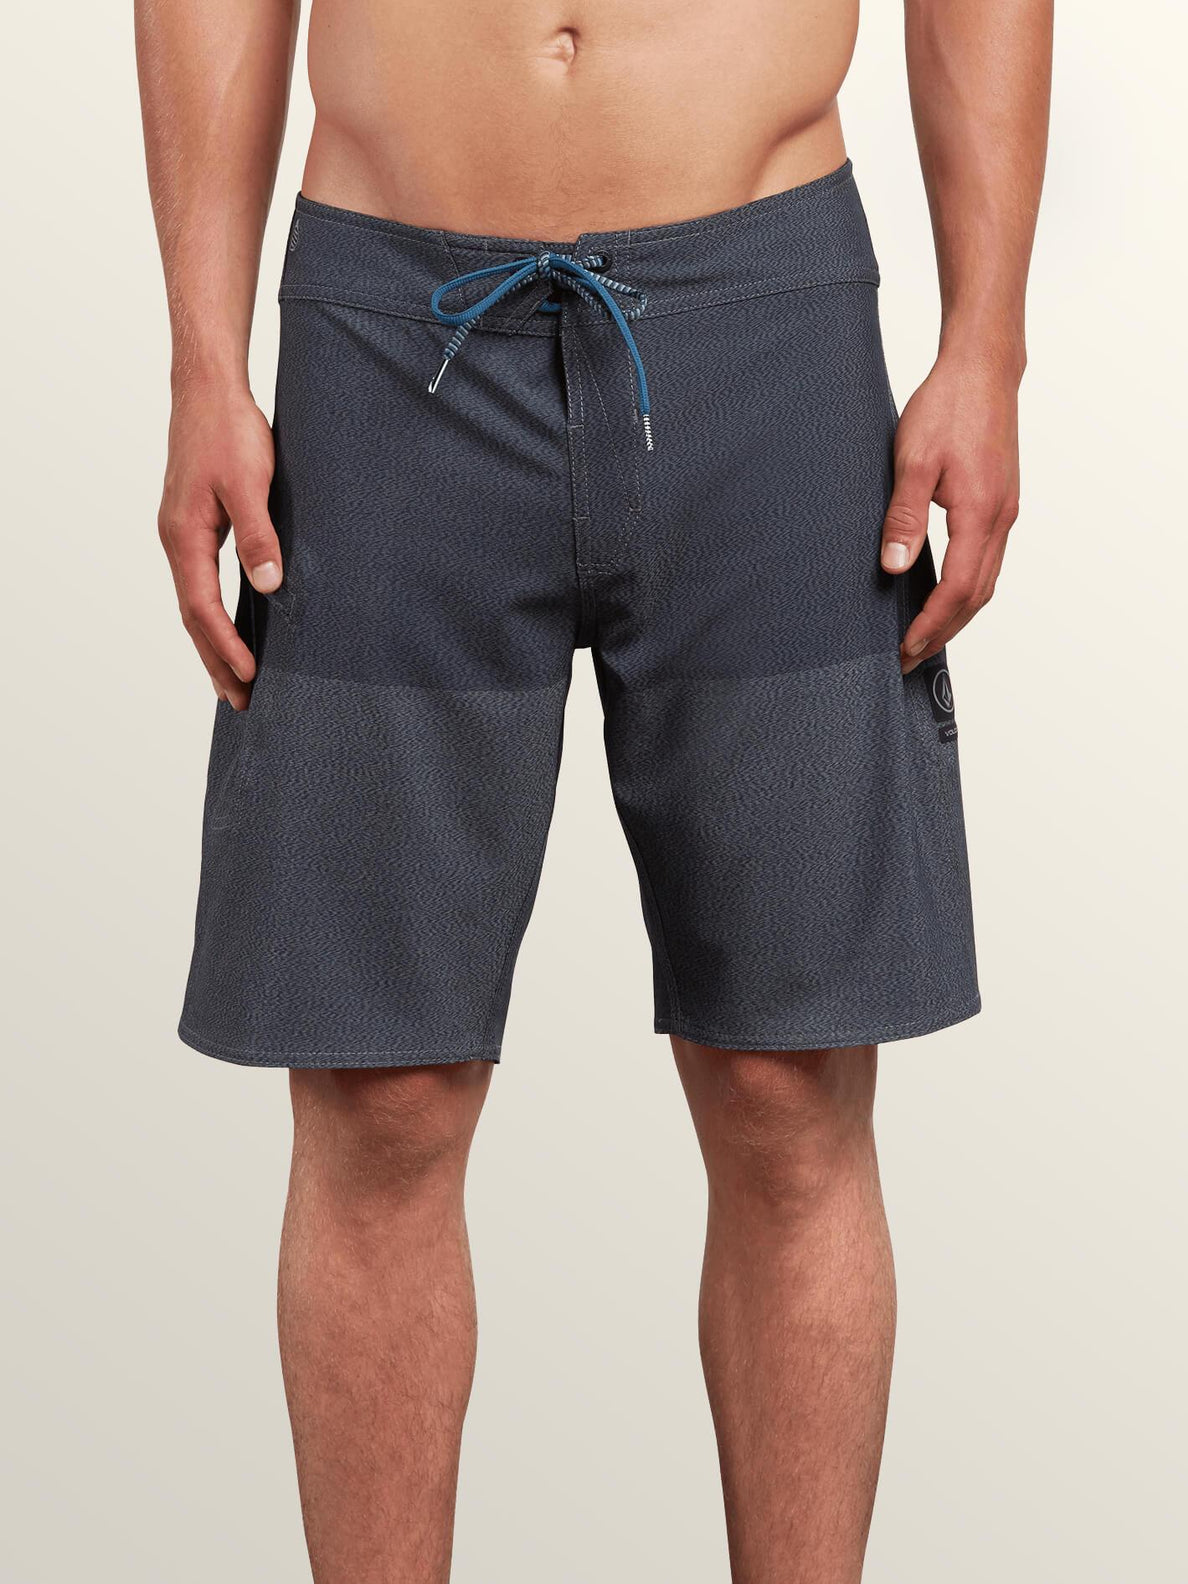 Lido Heather Mod Boardshorts In Smokey Blue, Front View